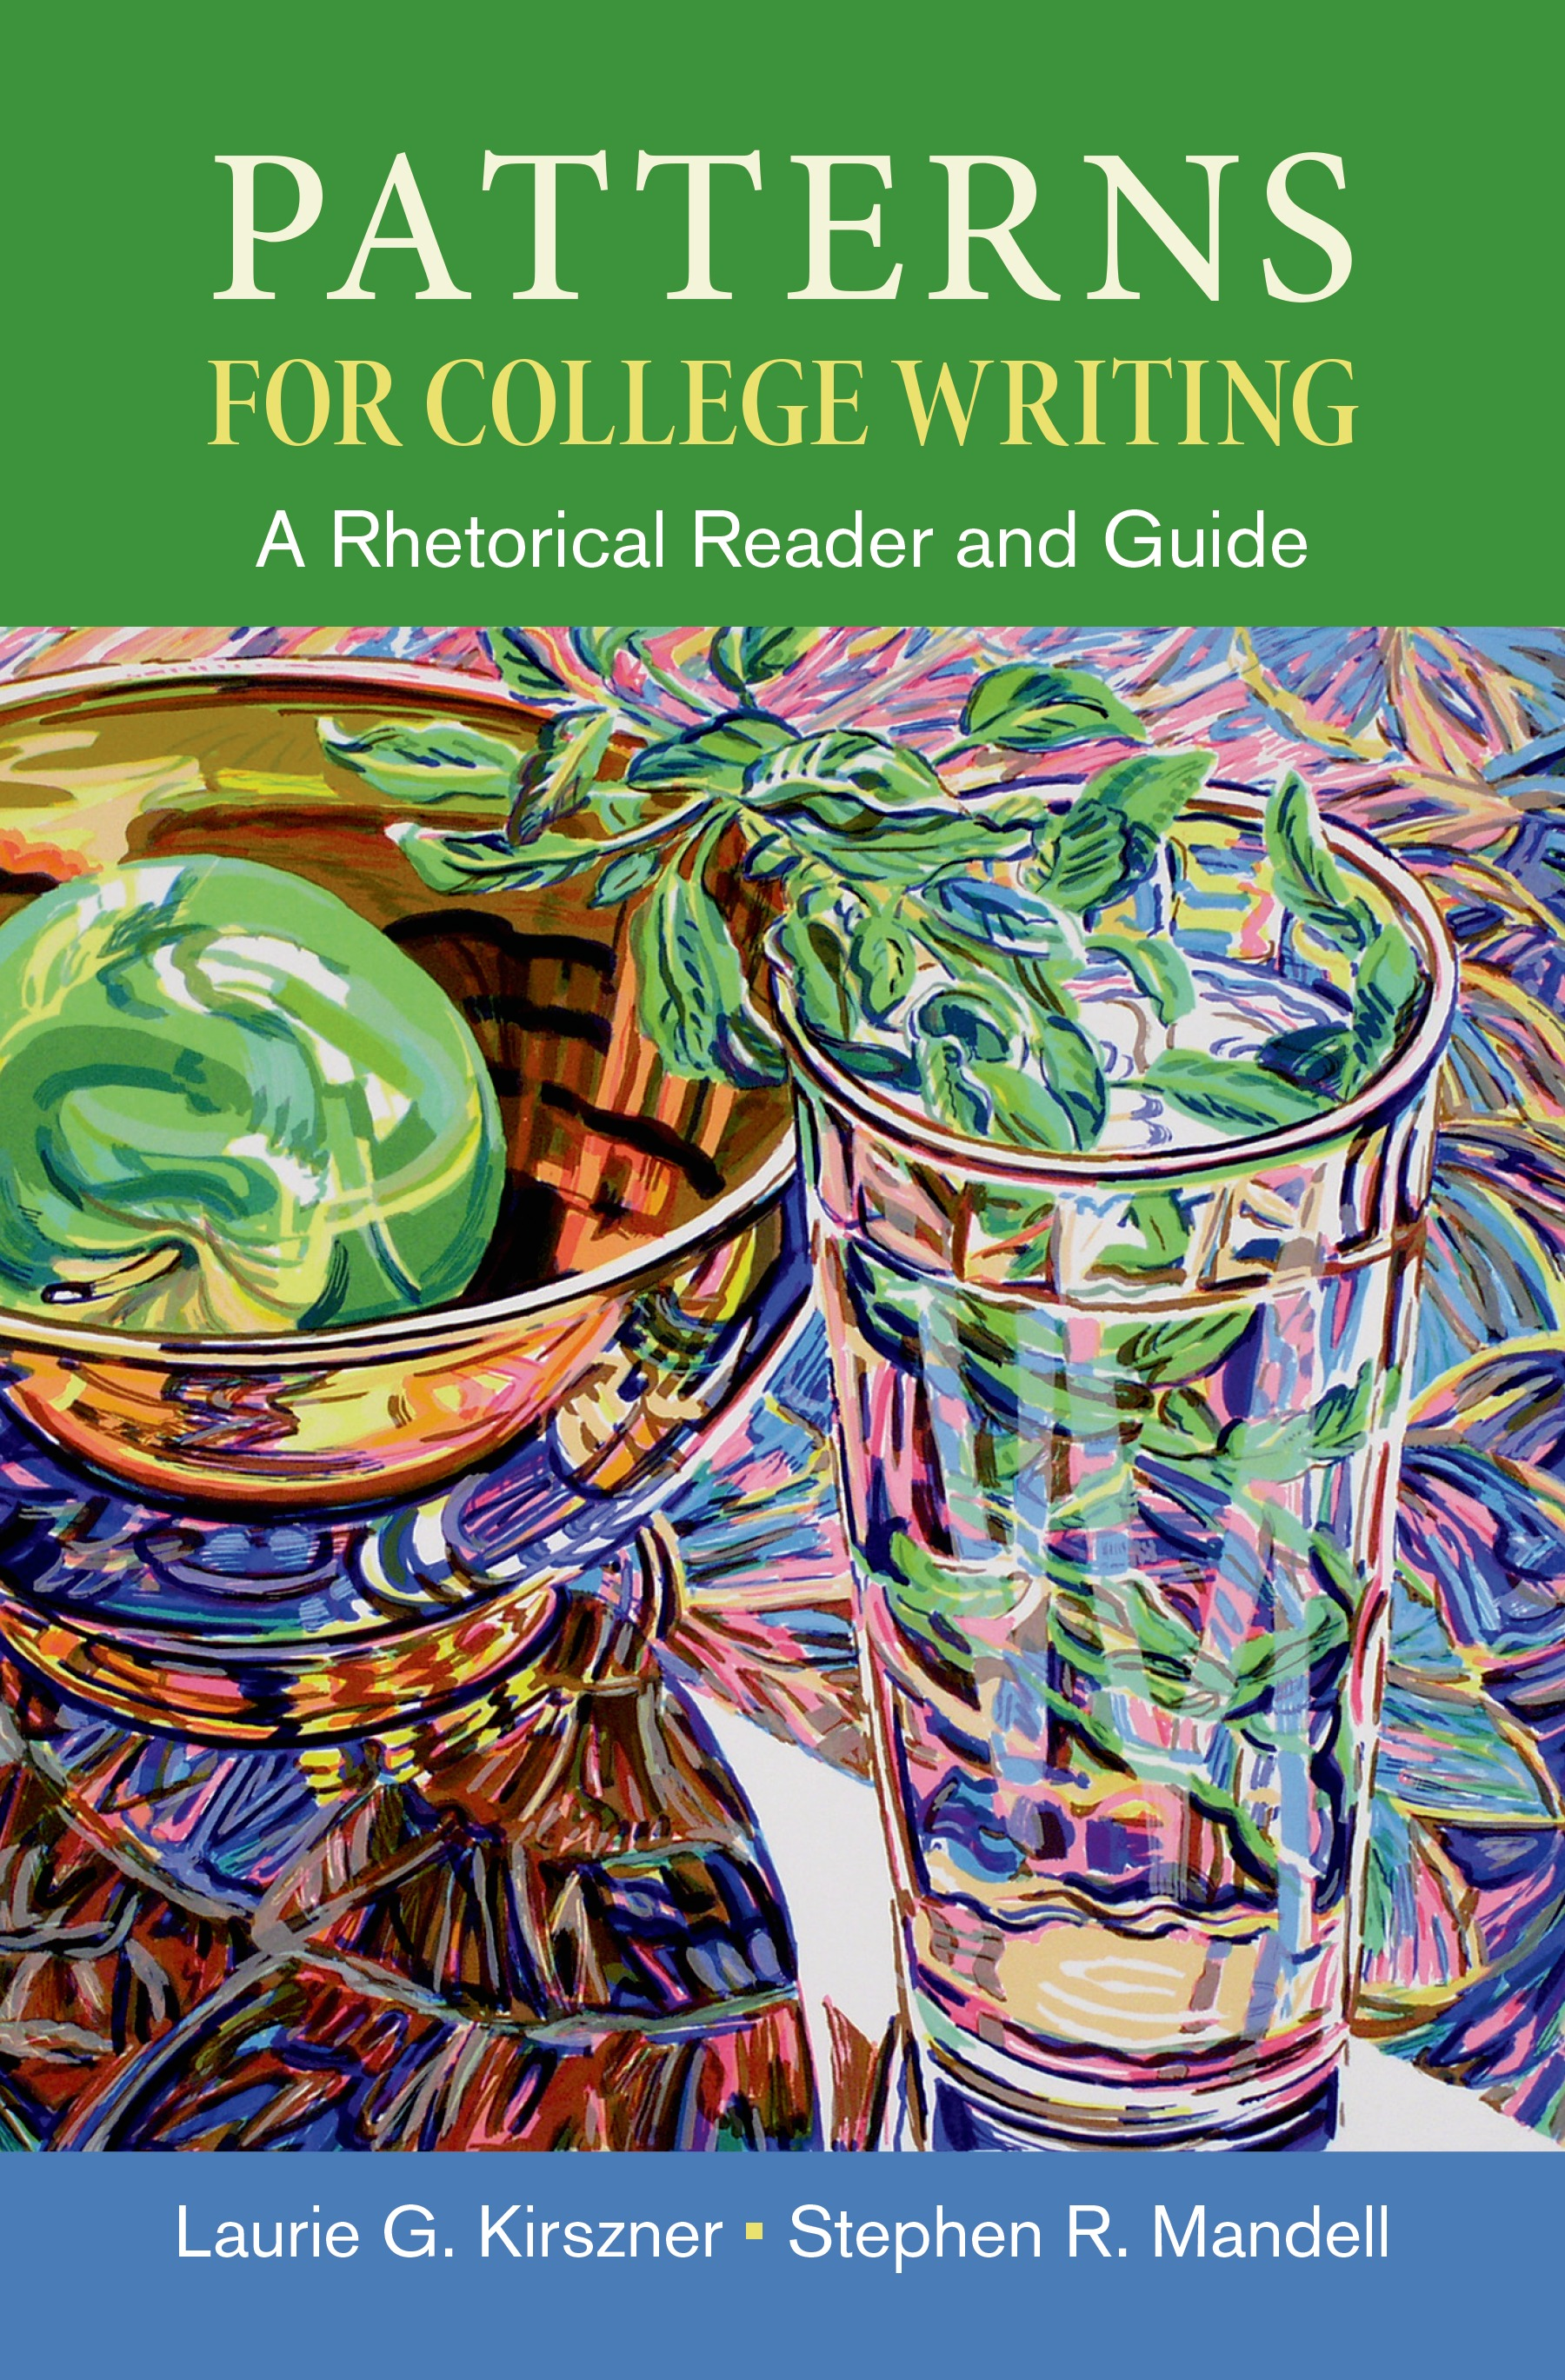 writing with a thesis a rhetoric and reader 11th edition Patterns for college writing a rhetorical reader & guide 11th edition by laurie g kirszner available in trade paperback on powellscom, also read synopsis and reviews  patterns for college writing a rhetorical reader & guide 11th edition by laurie g kirszner  understanding thesis and support  developing a thesis  3 arrangement.